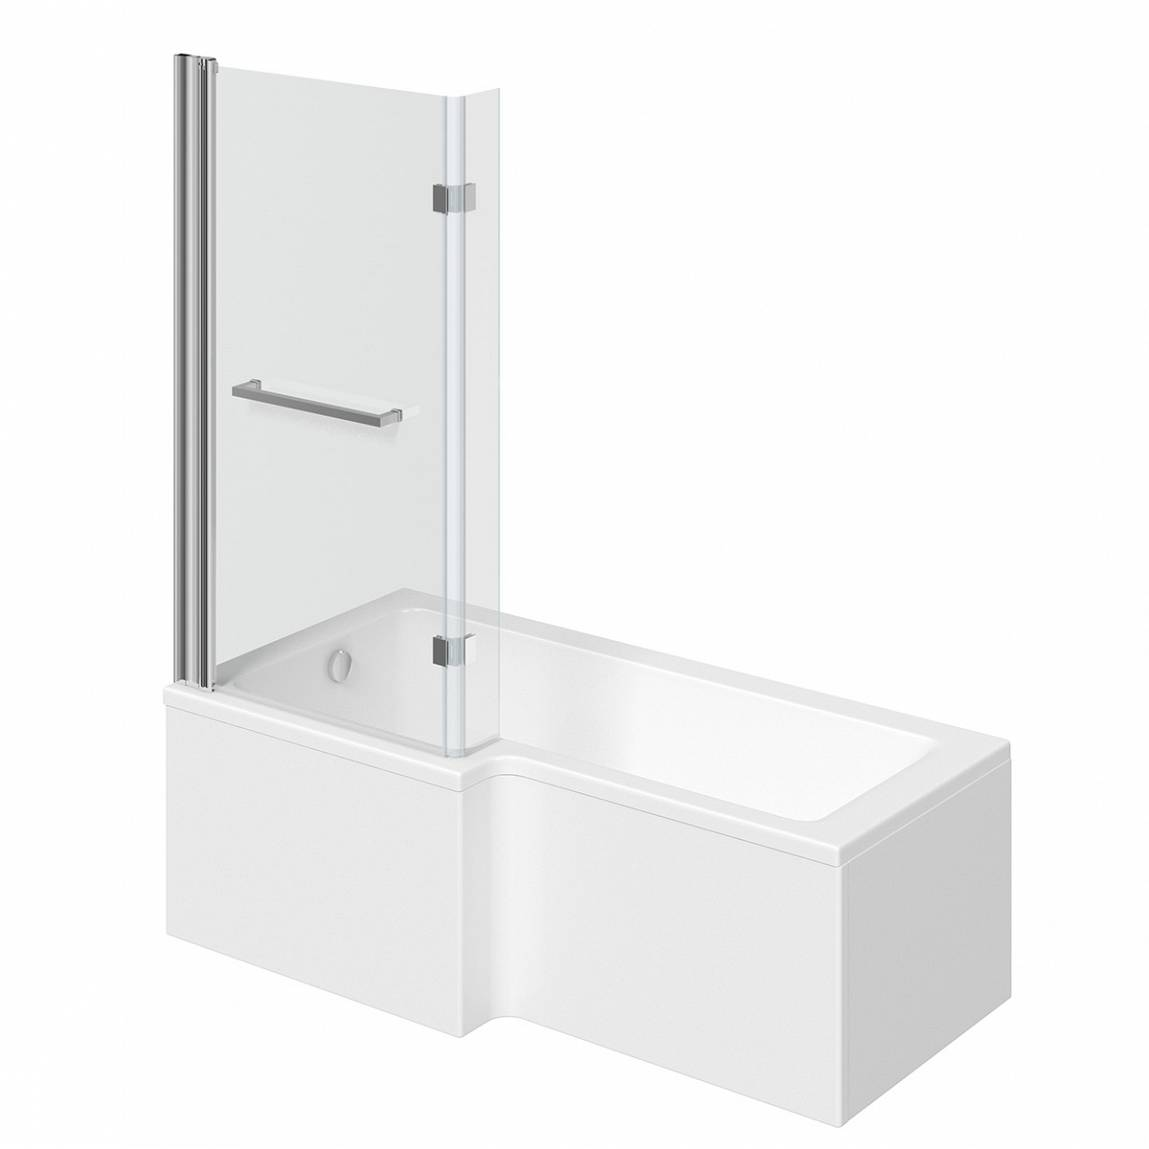 Image of Boston Shower Bath 1500 x 850 LH with 8mm Hinged Screen with Towel Rail